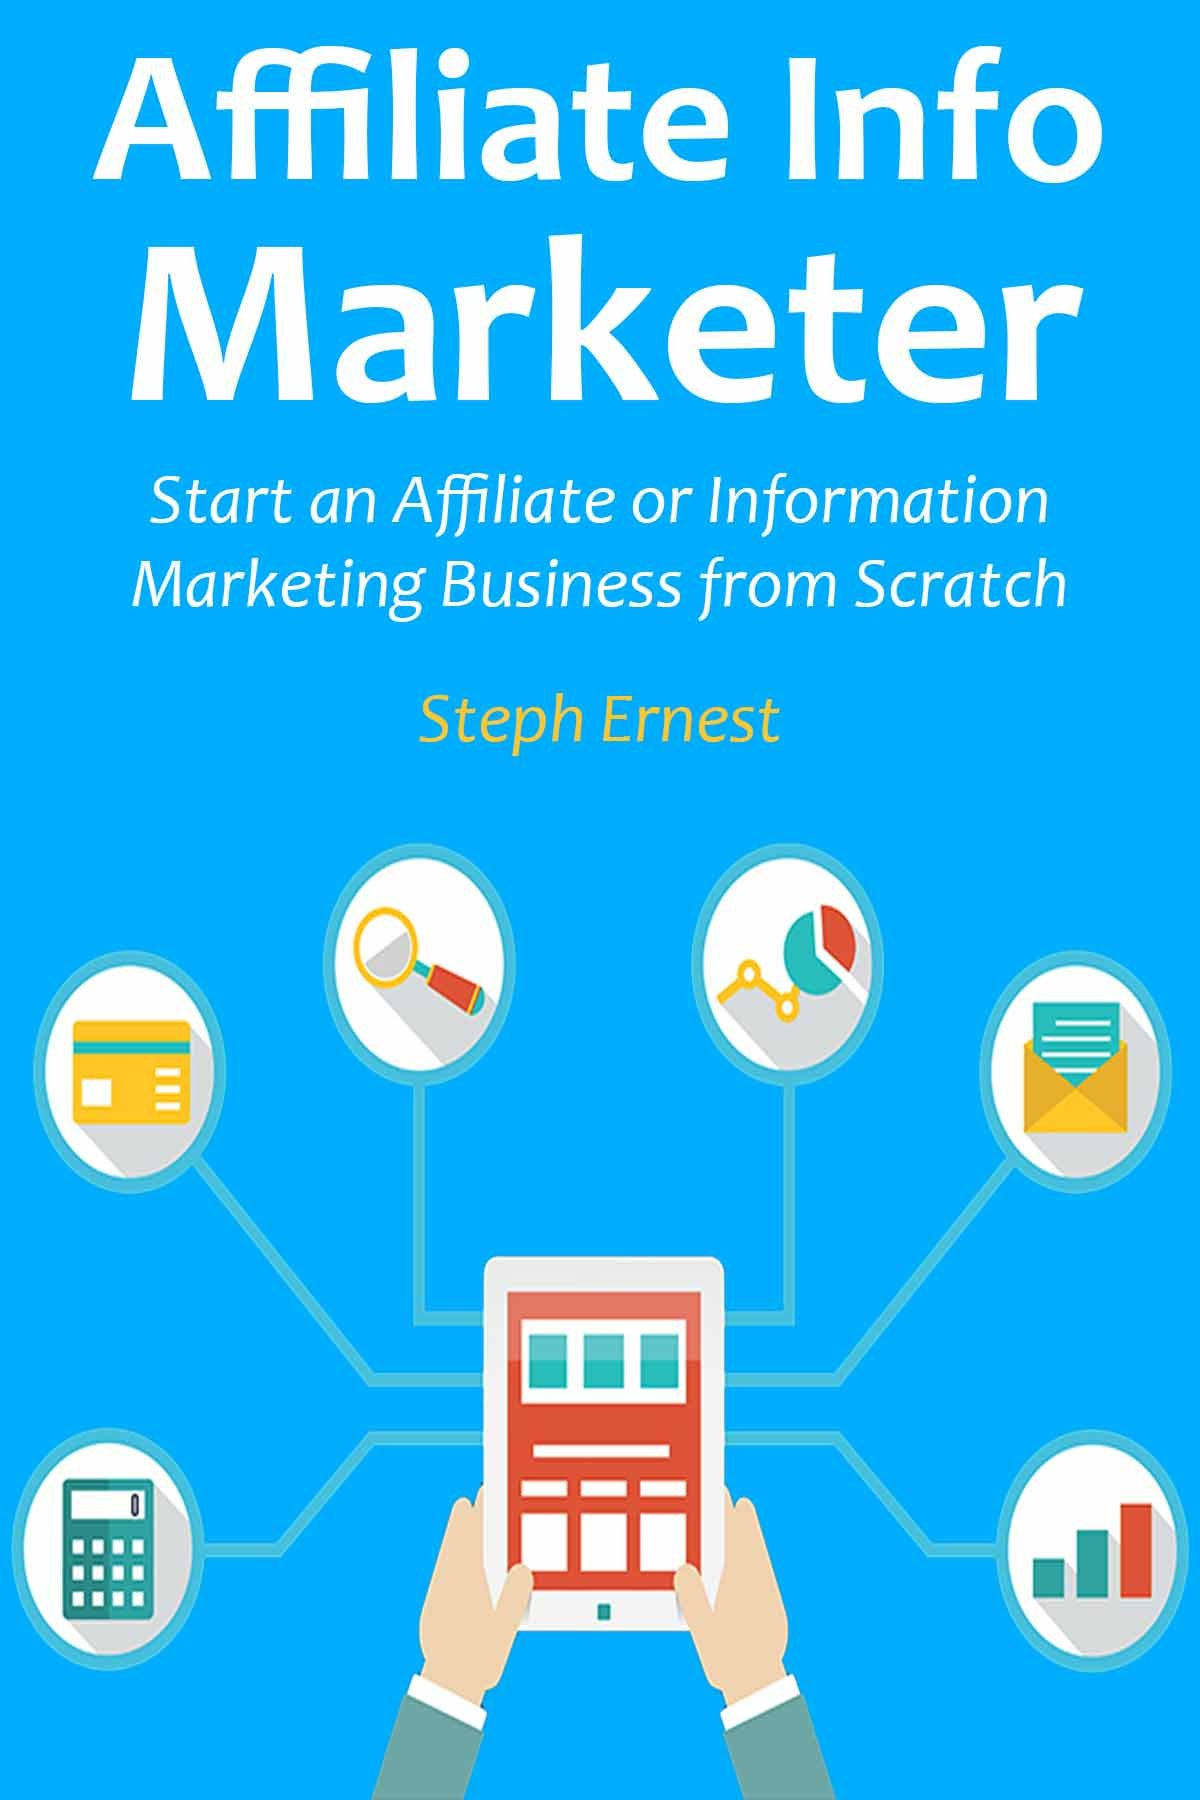 AFFILIATE INFO MARKETER: Start an Affiliate or Information Marketing Business from Scratch